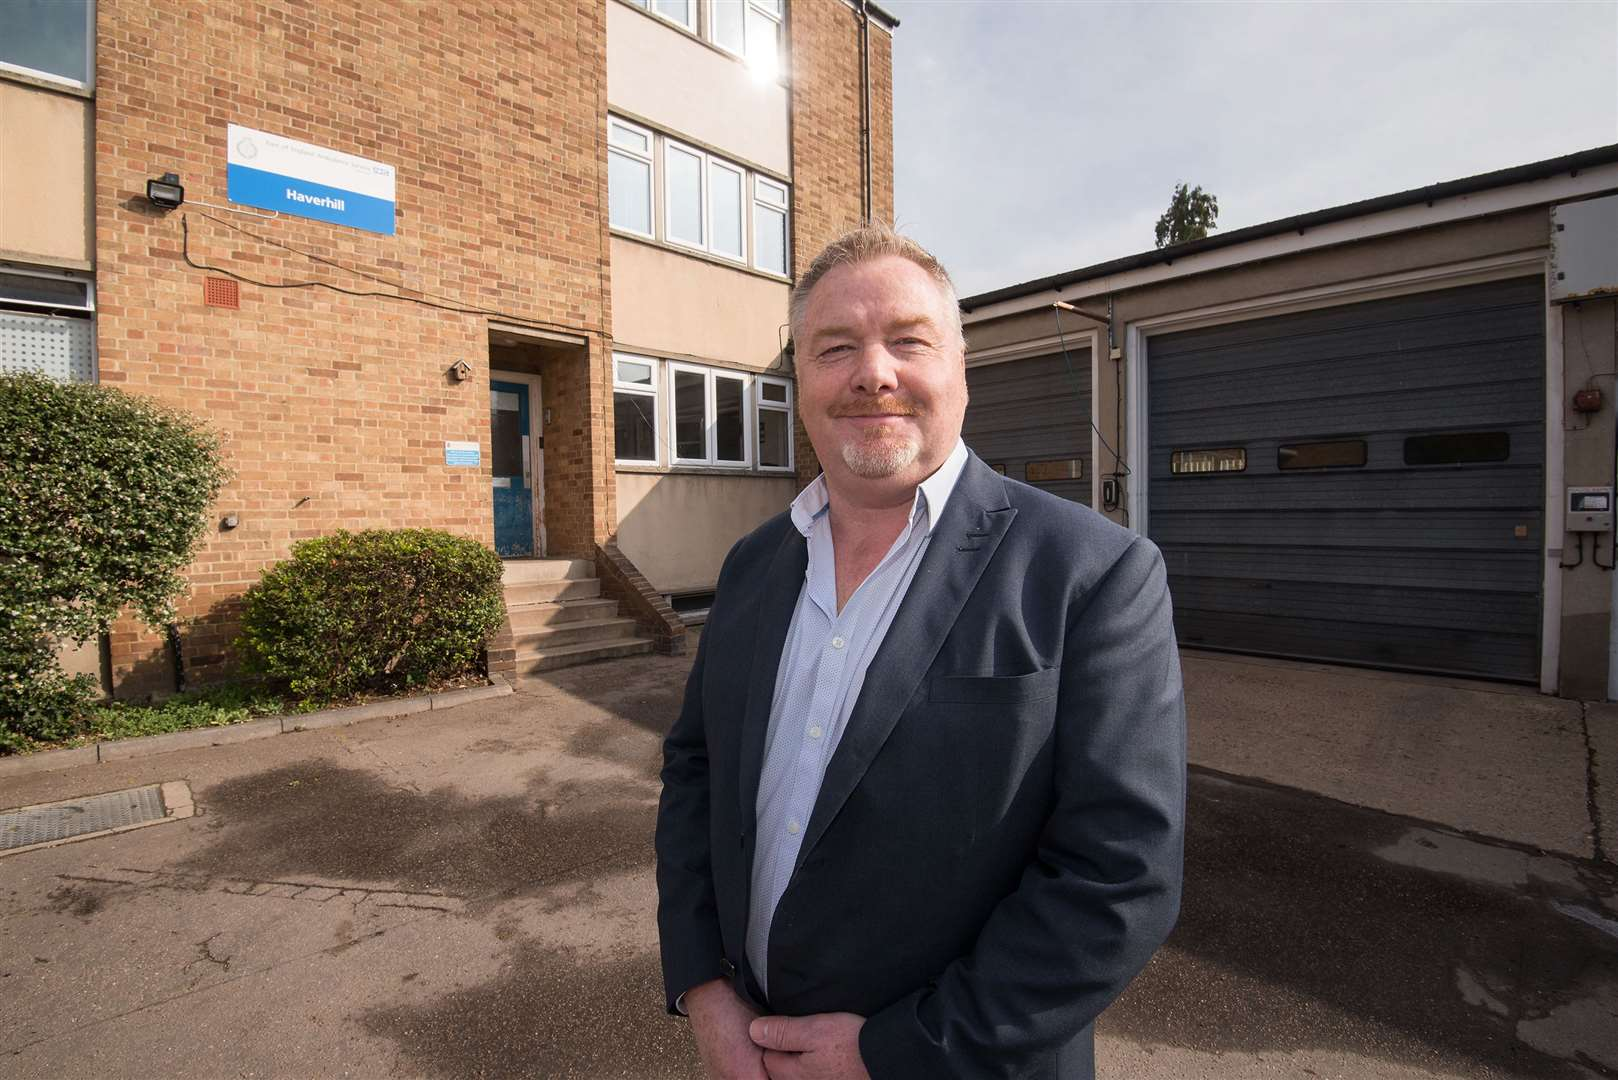 Paul Marshall, the East of England Ambulance Trust's head of service delivery for Cambridgeshire and Peterborough outside Haverhill ambulance station. Picture by Mark Westley.